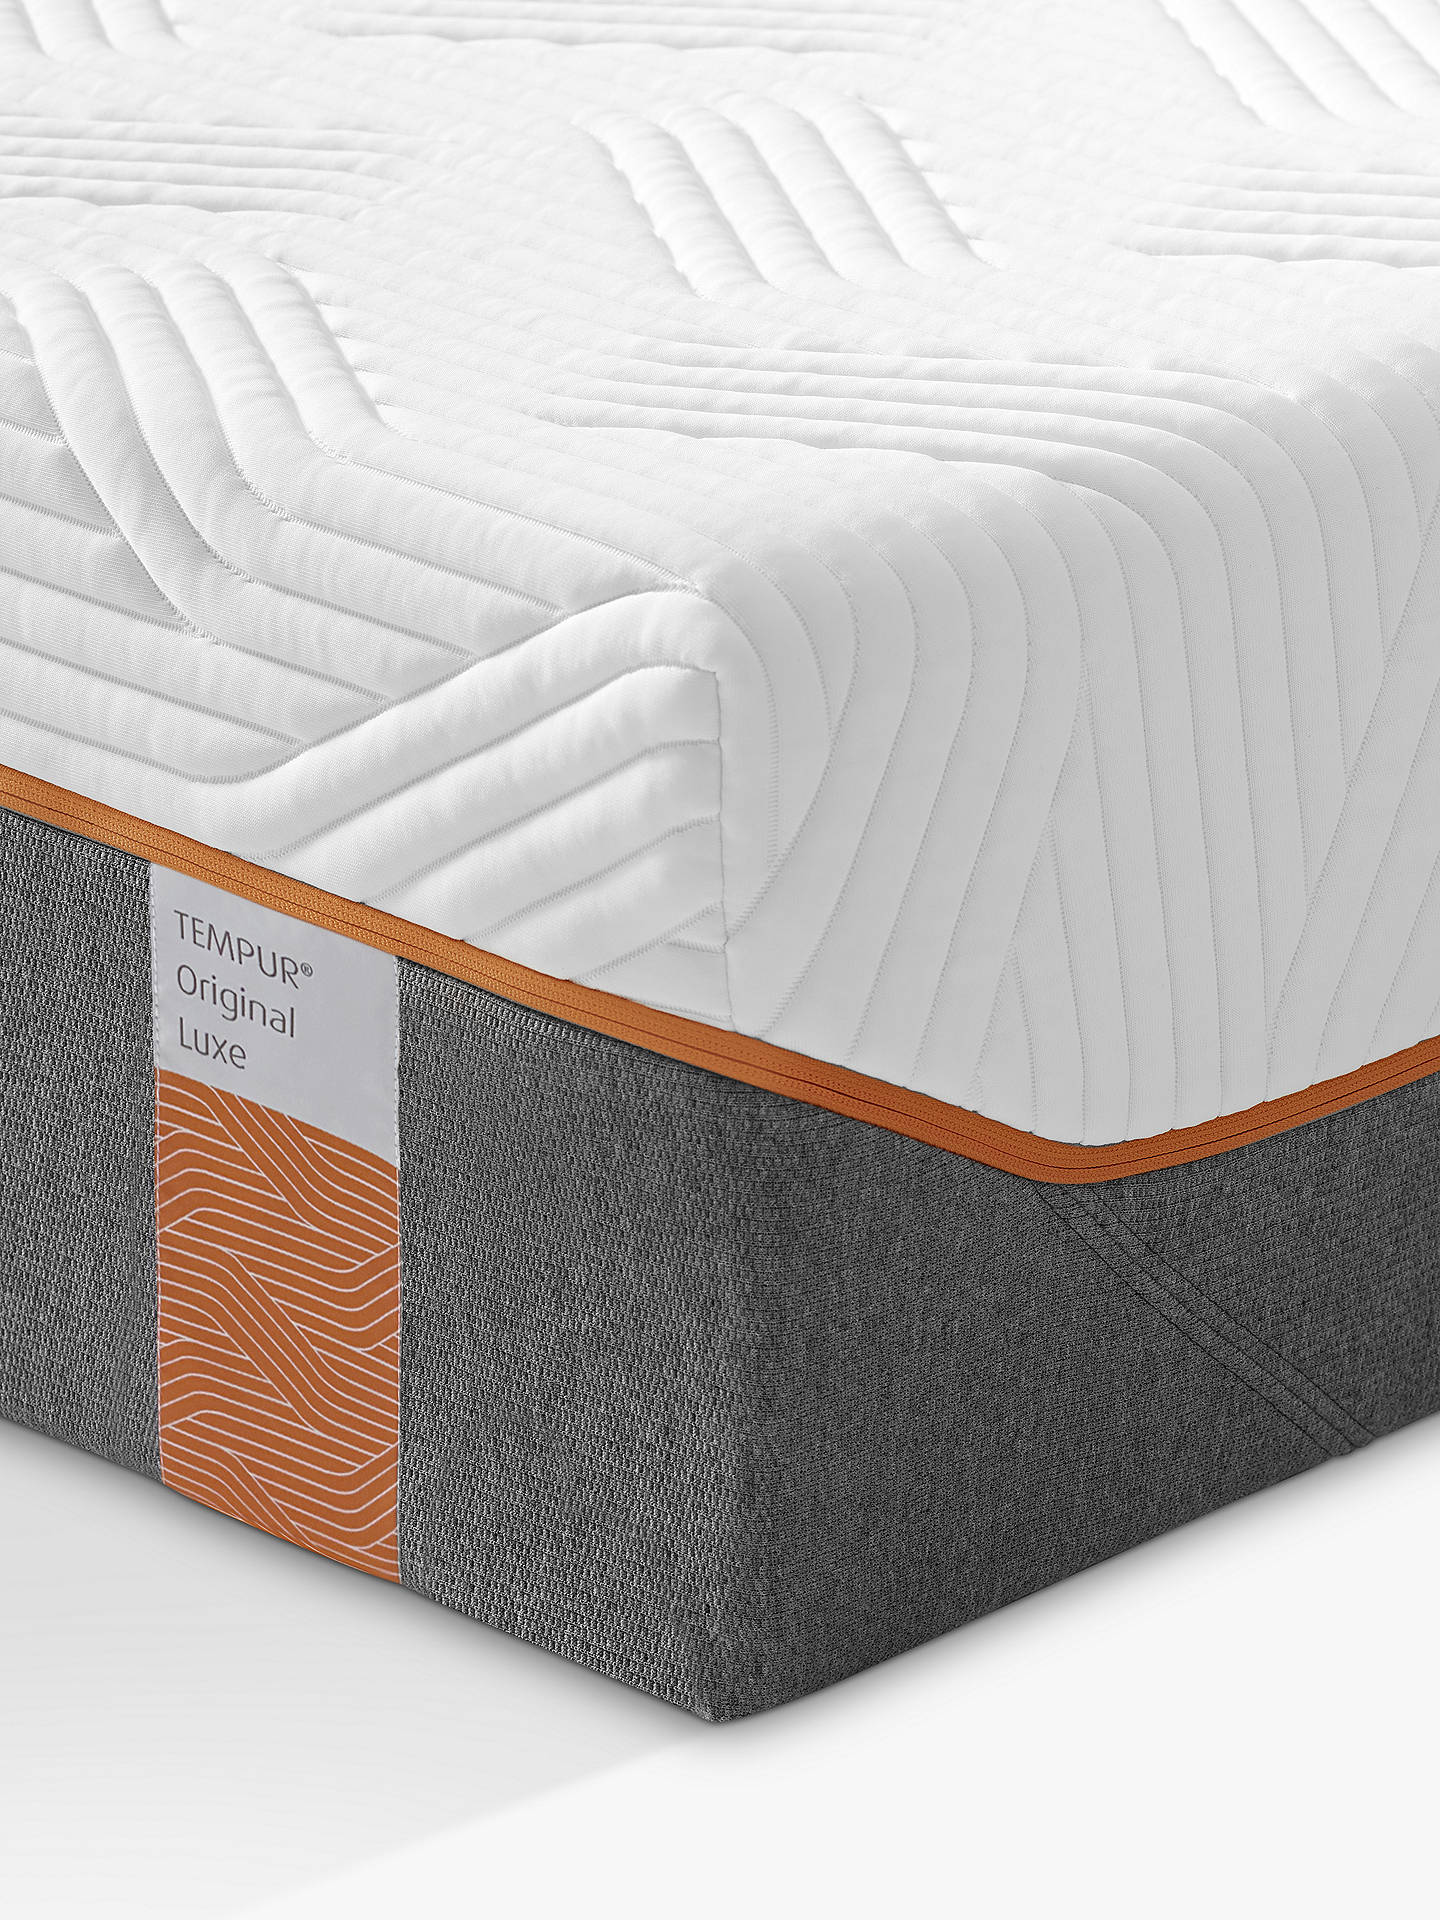 Buy Tempur Original Luxe Memory Foam Mattress, Medium Tension, Single Online at johnlewis.com